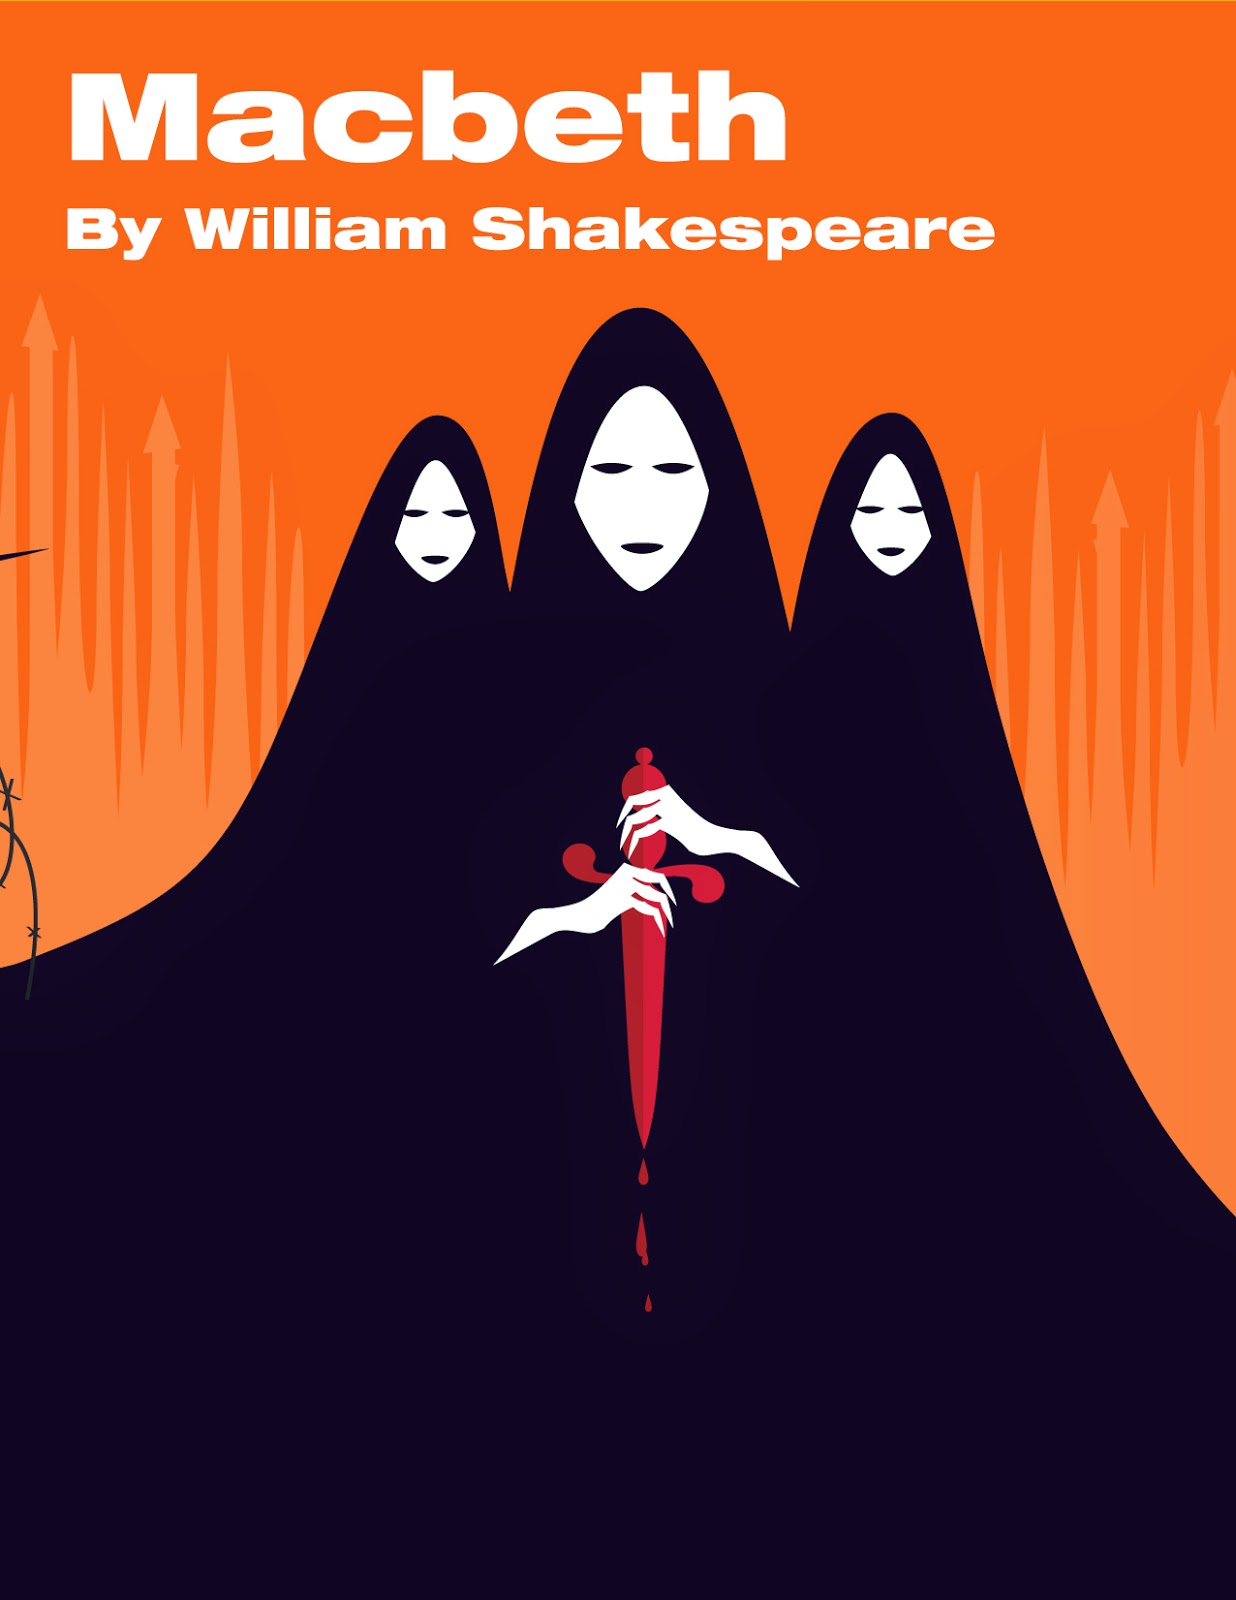 the main theme of evil in macbeth a play by william shakespeare Get an answer for 'what are the main themes of william shakespeare's macbeth' and find homework help for other macbeth questions at enotes.